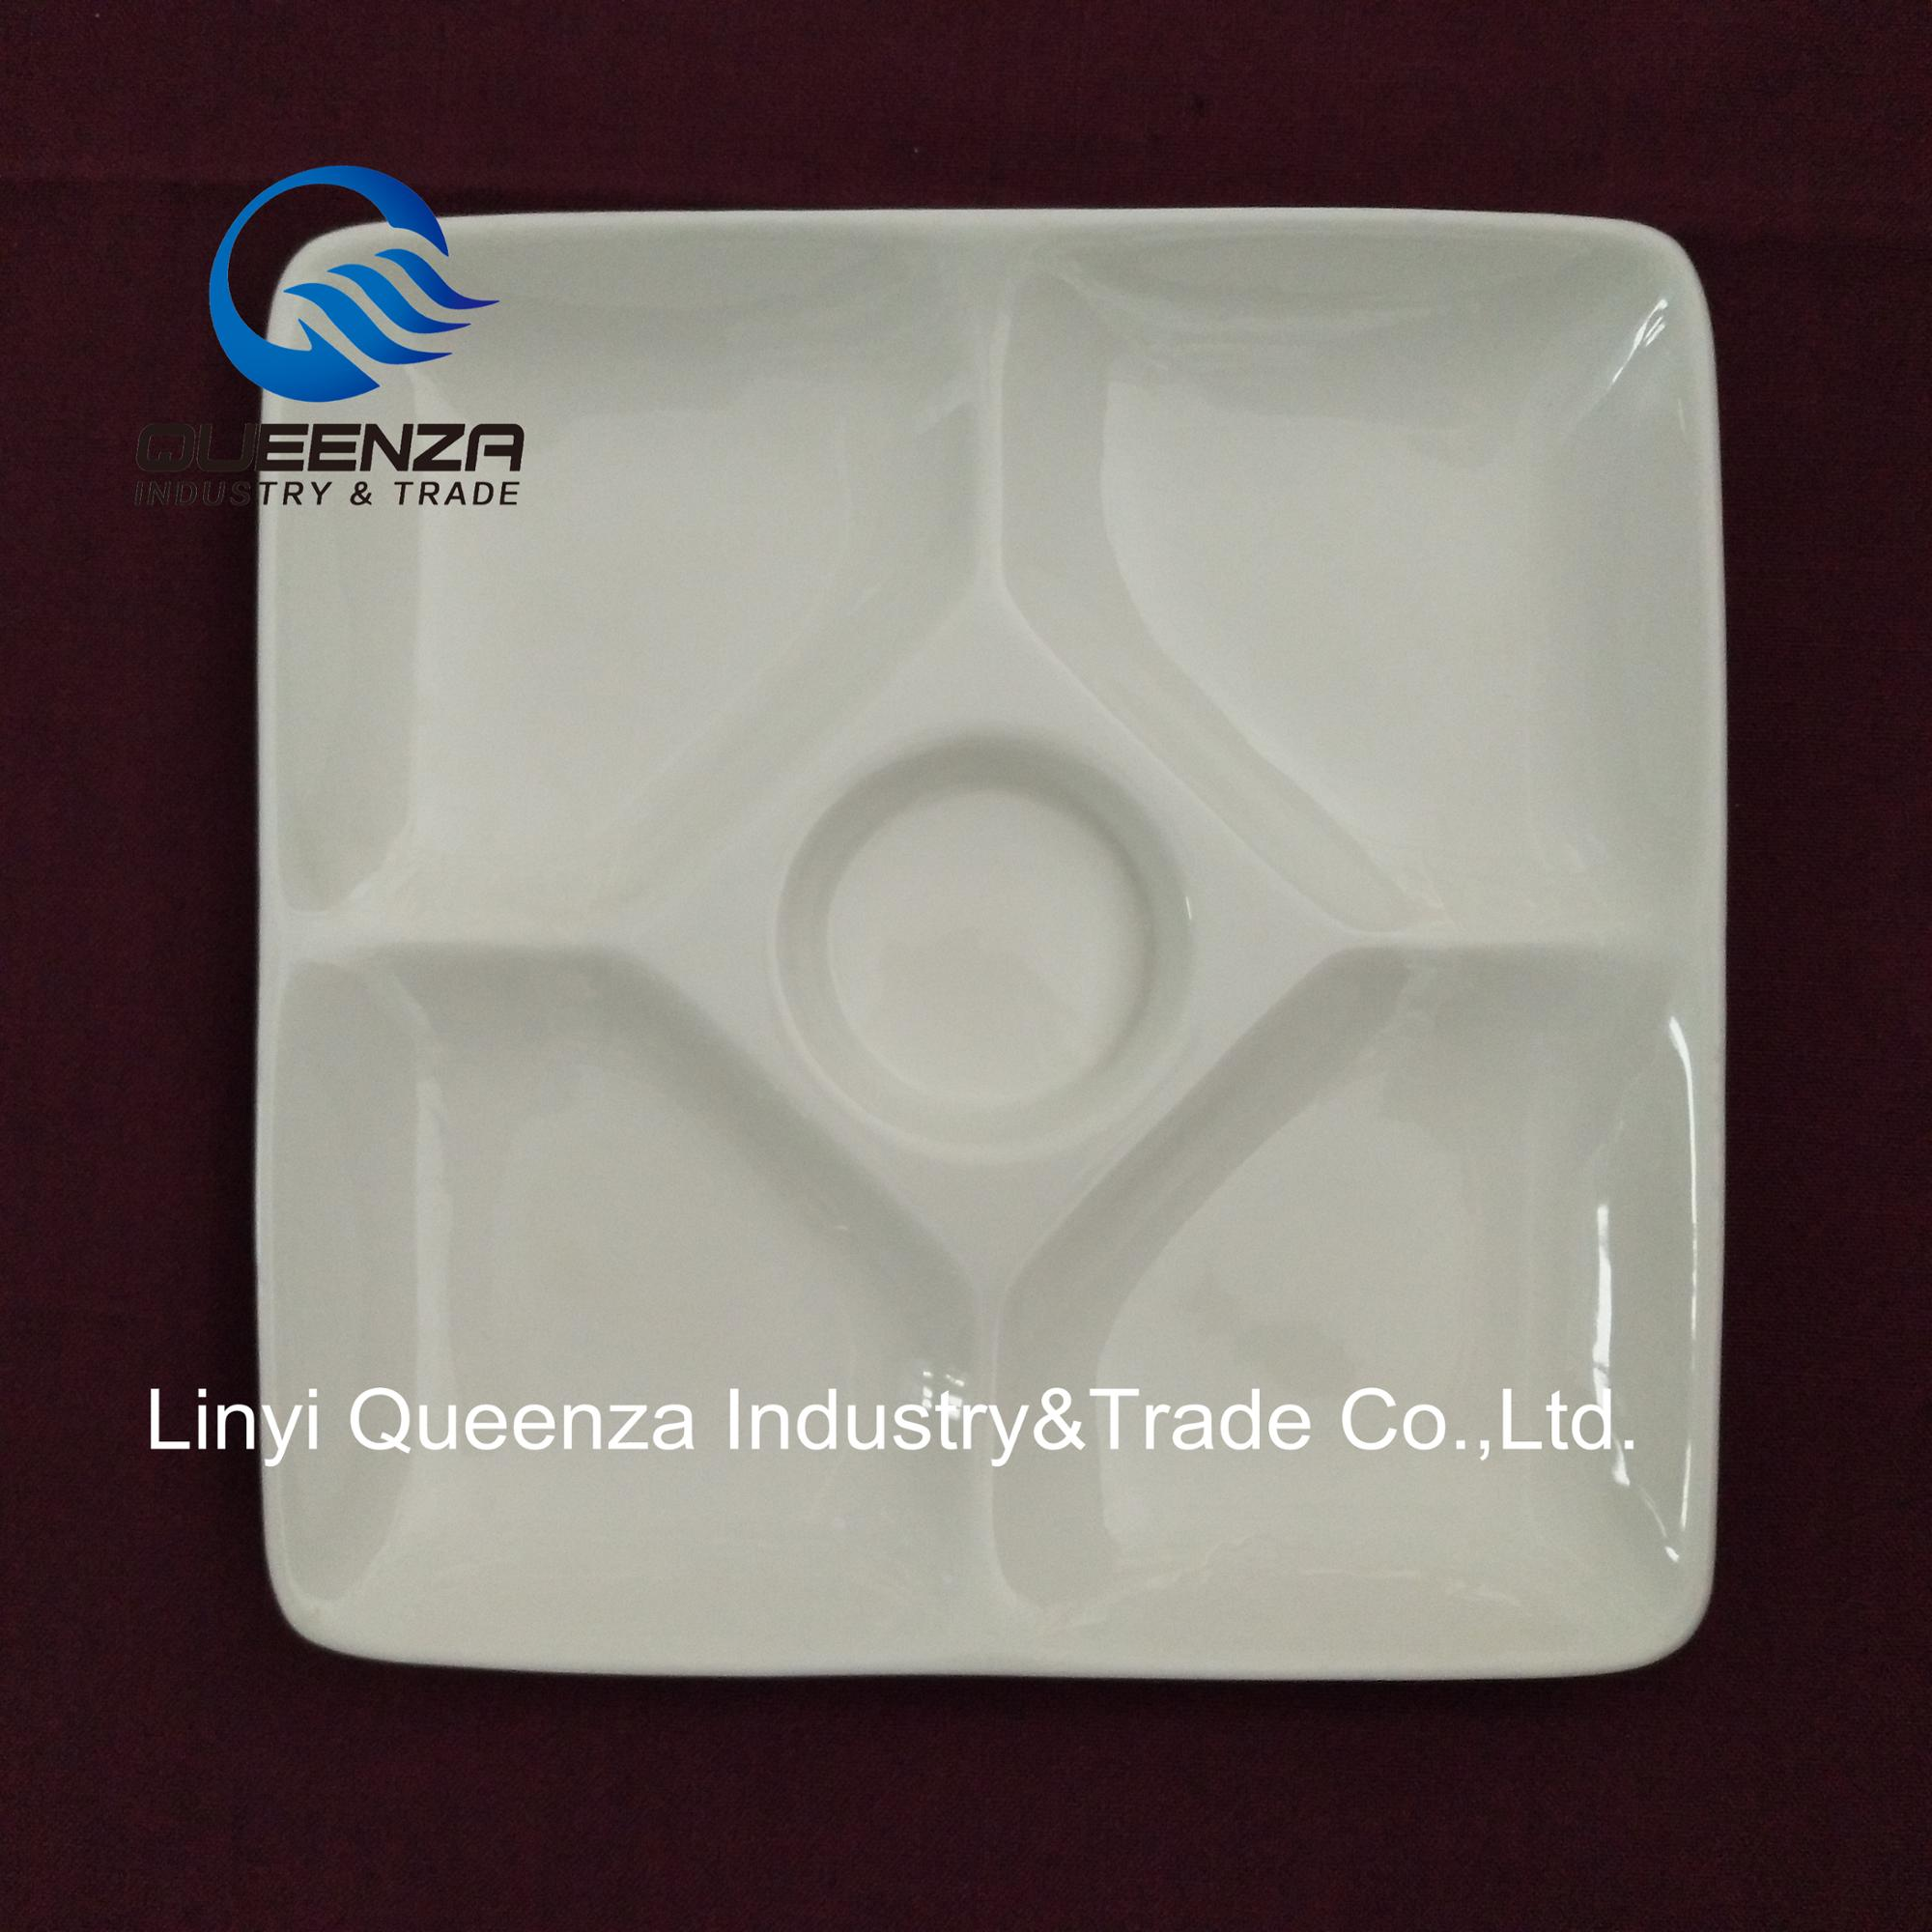 Sectional Dinner Plates Sectional Dinner Plates Suppliers and Manufacturers at Alibaba.com & Sectional Dinner Plates Sectional Dinner Plates Suppliers and ...